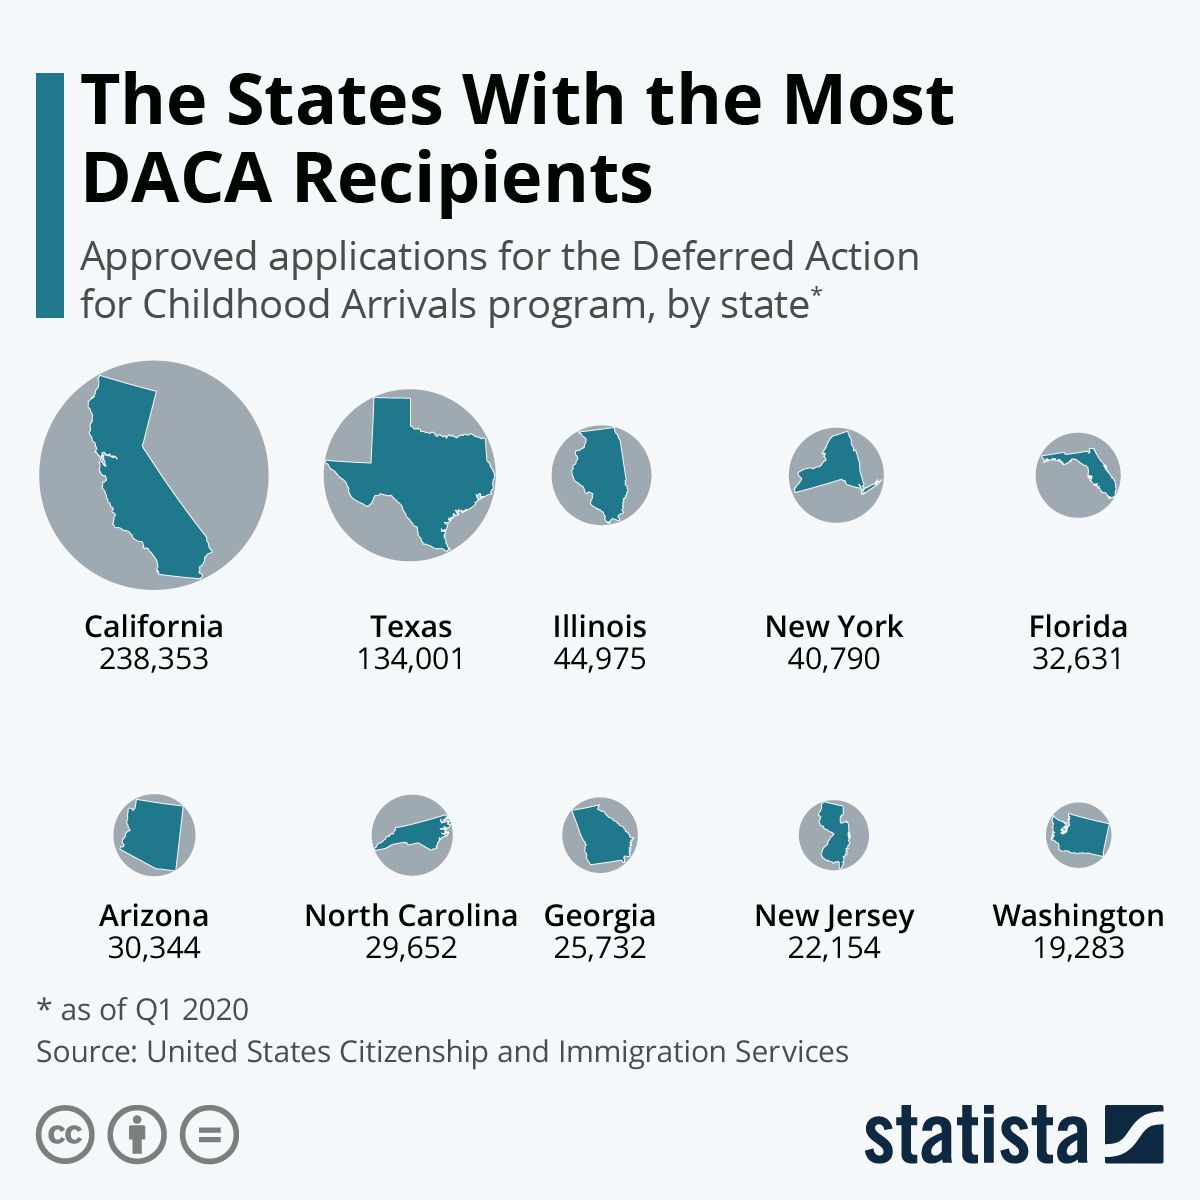 Infographic The States With the Most DACA Recipients in